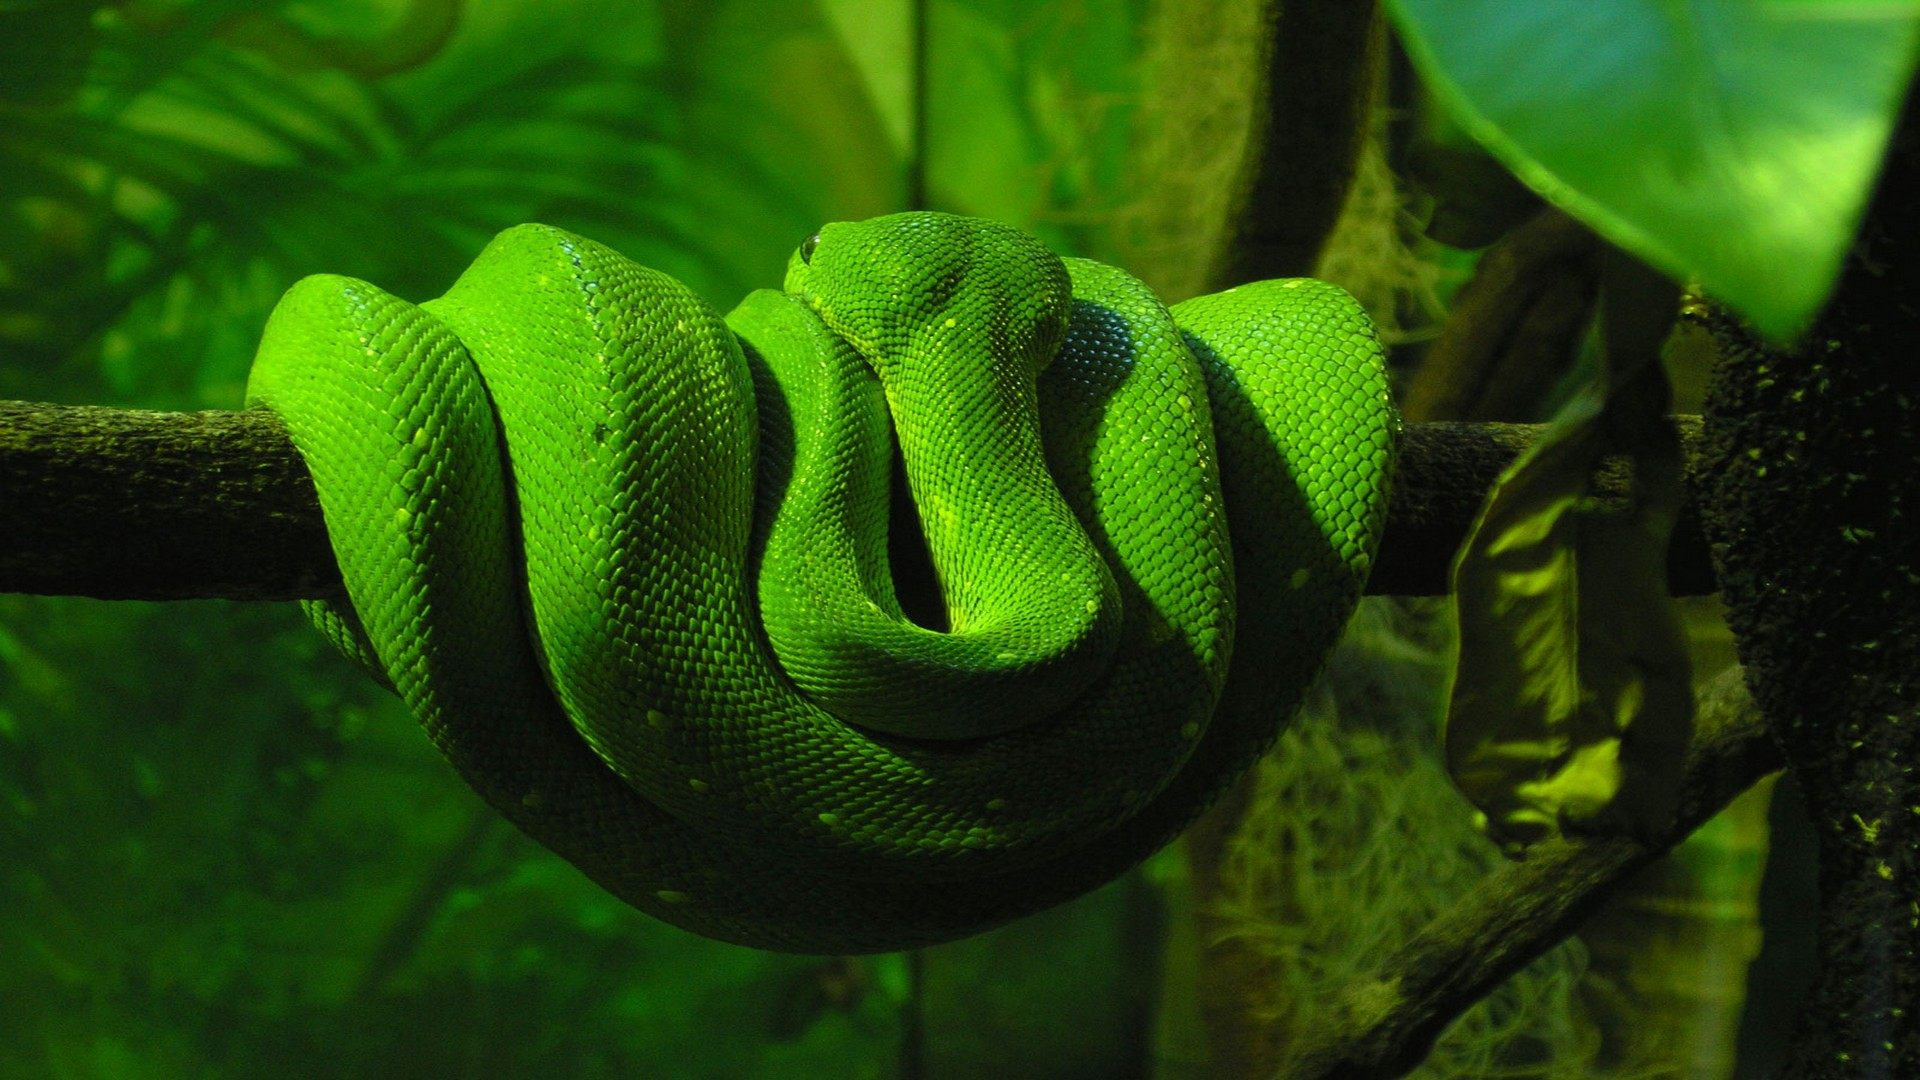 snakes hd wallpapers.